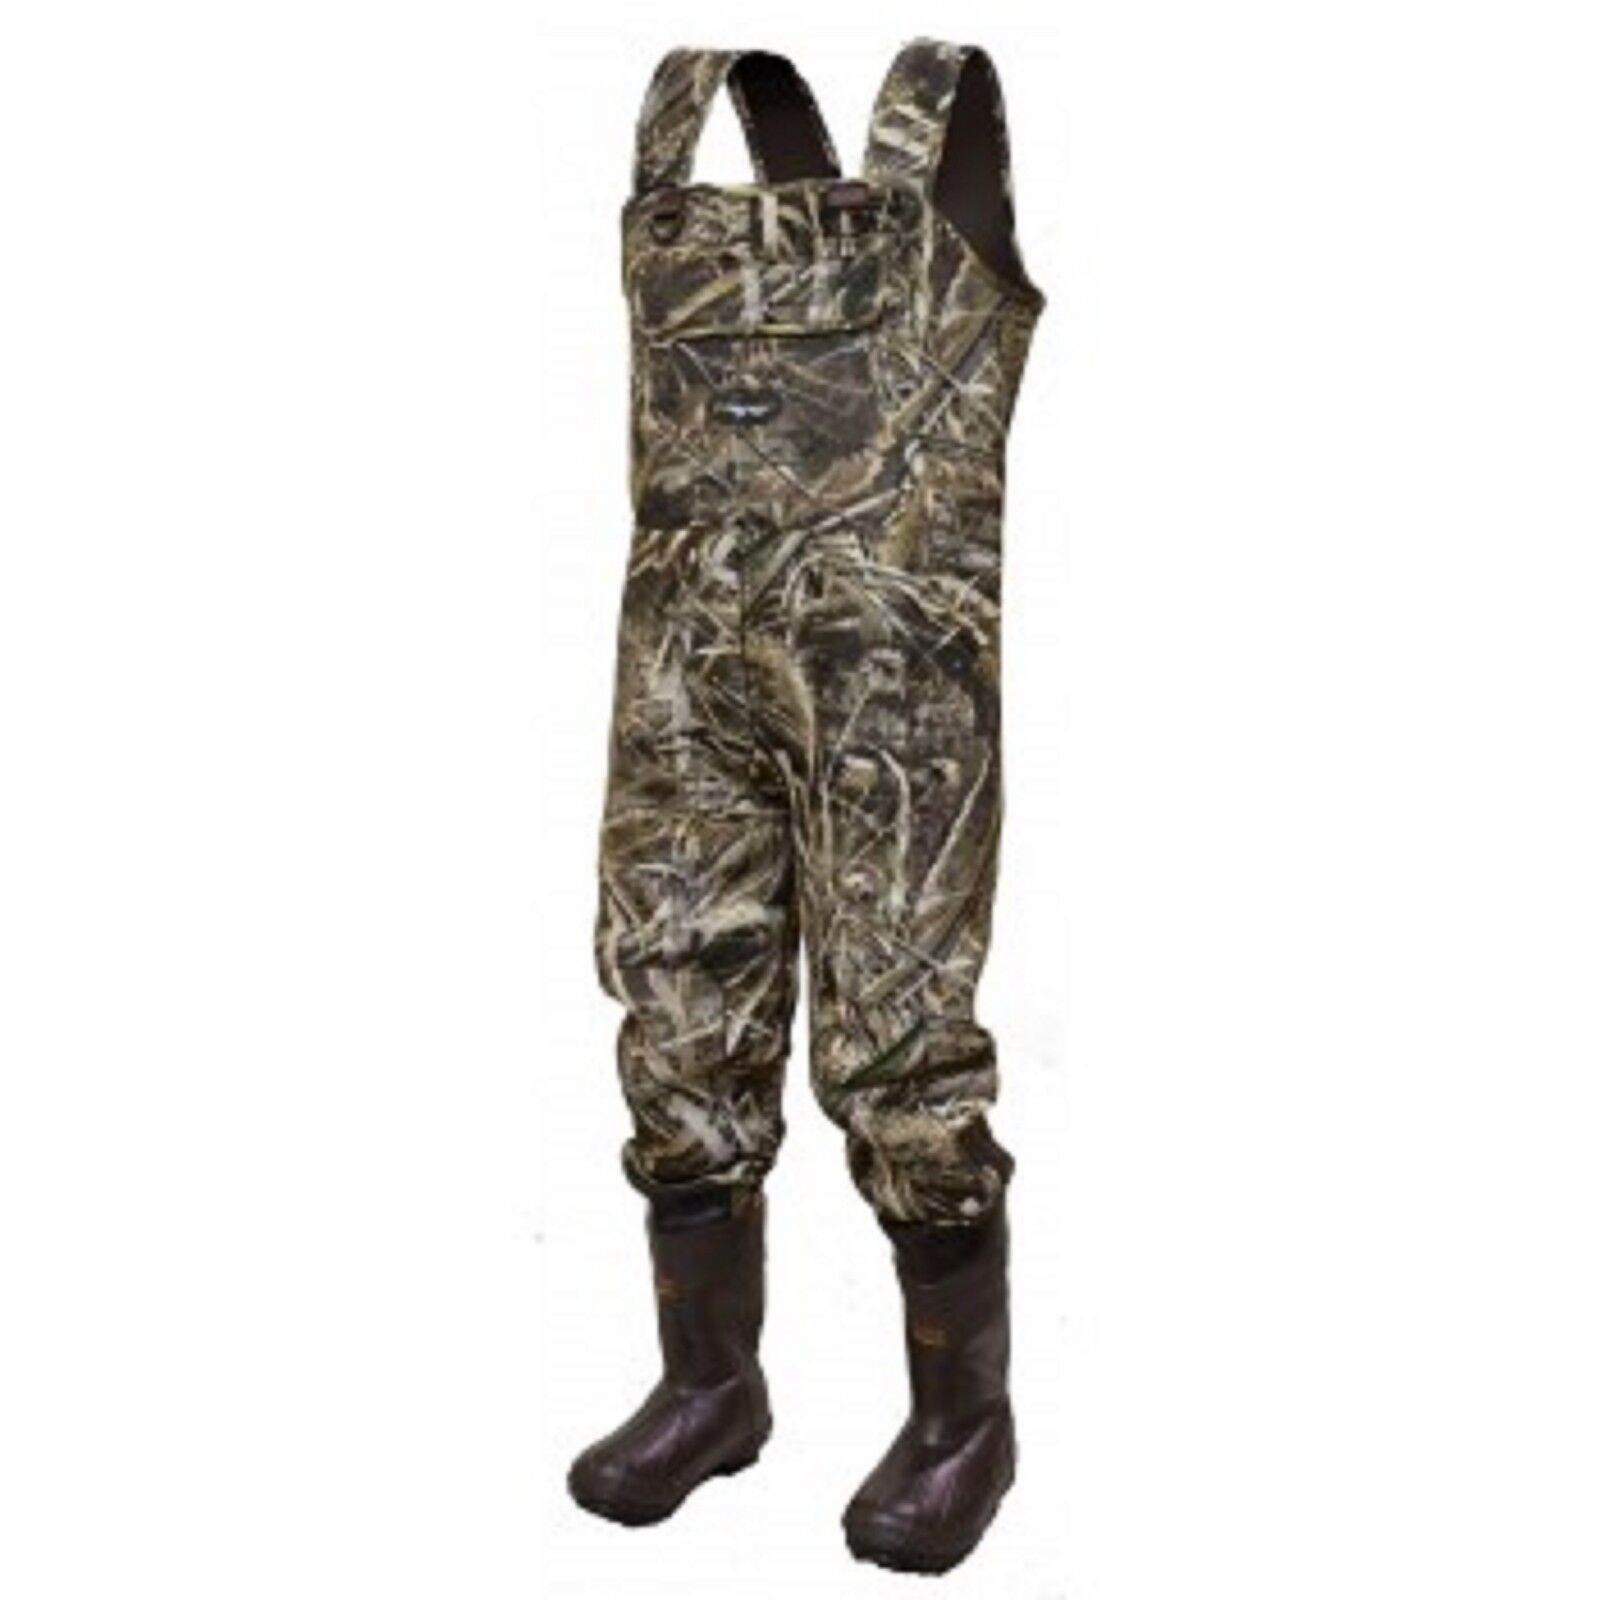 Frogg Toggs Amphib Camo Wader Sizes 8-14  2713656  CHOOSE YOUR SIZE   1